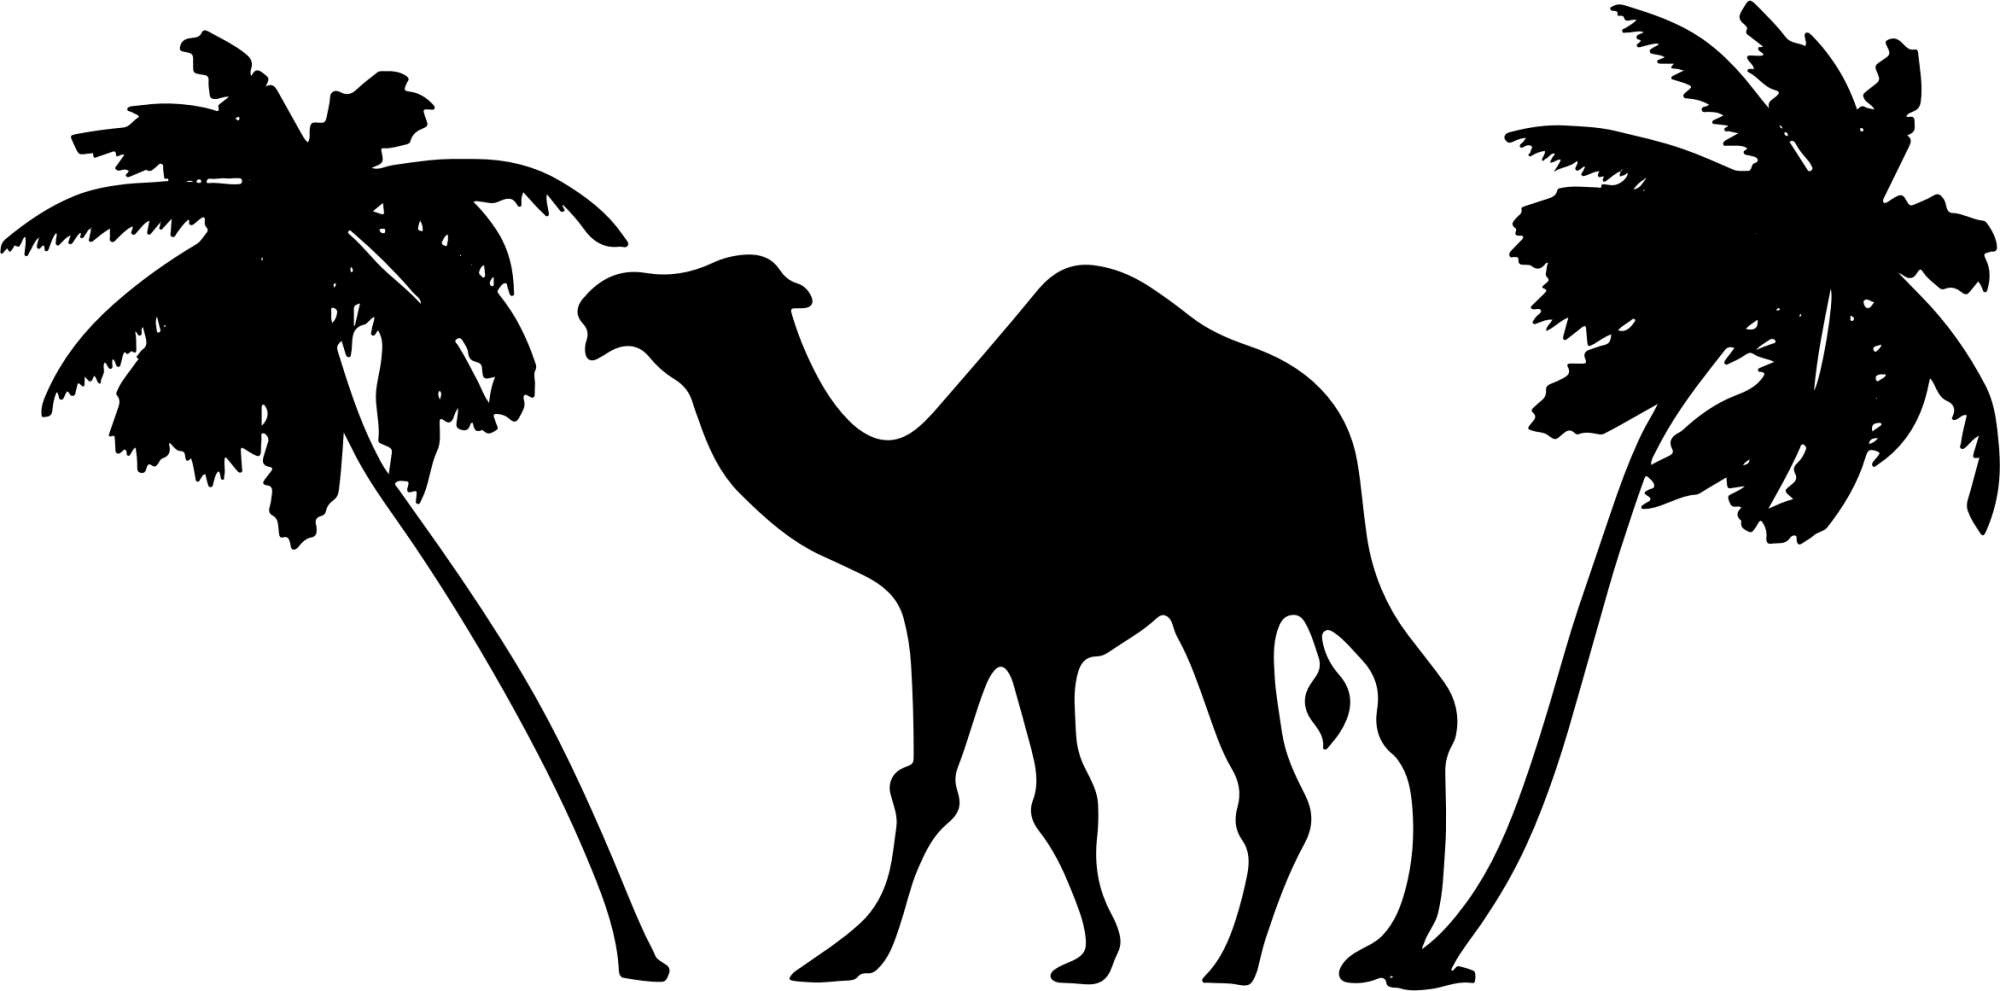 hight resolution of camel clipart palm tree trees silhouette icons png